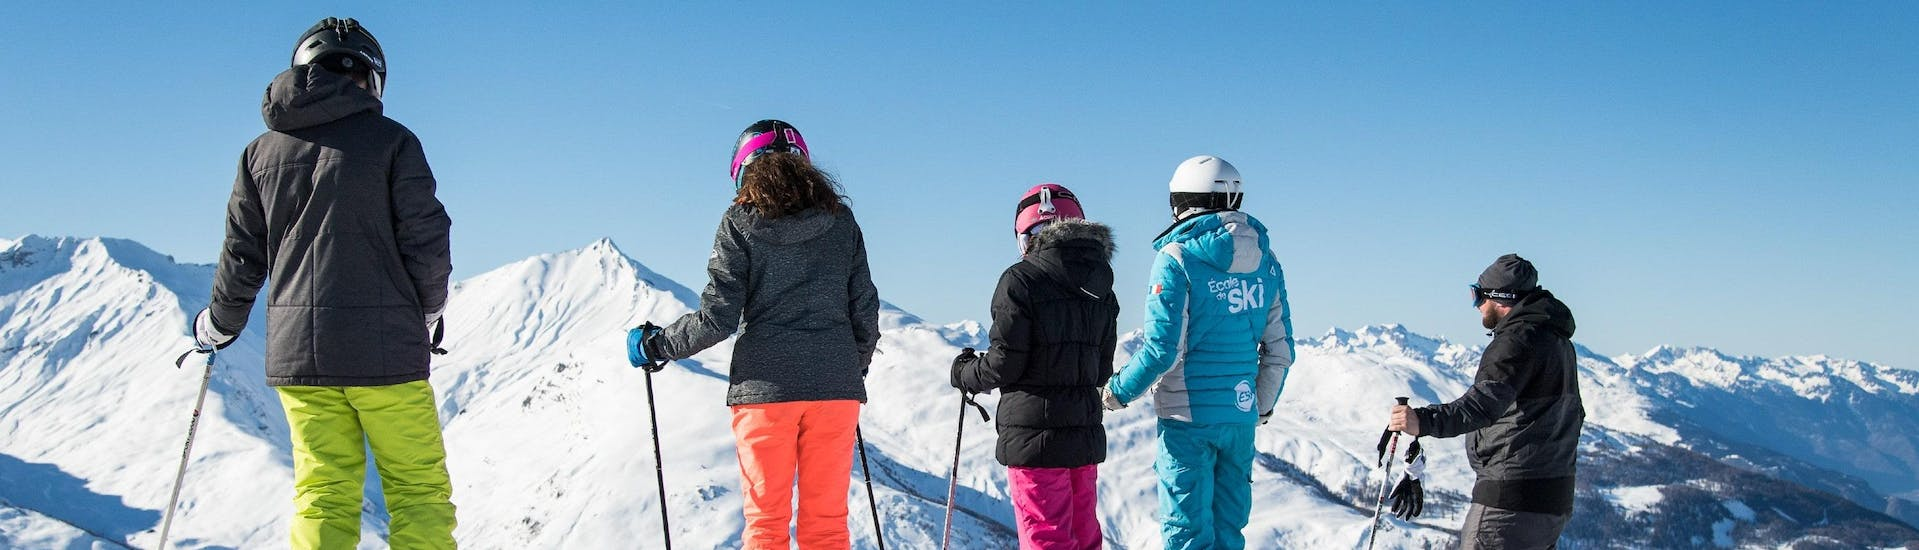 ski-lessons-for-teens-adults-february-all-levels-esi-les-orres-hero